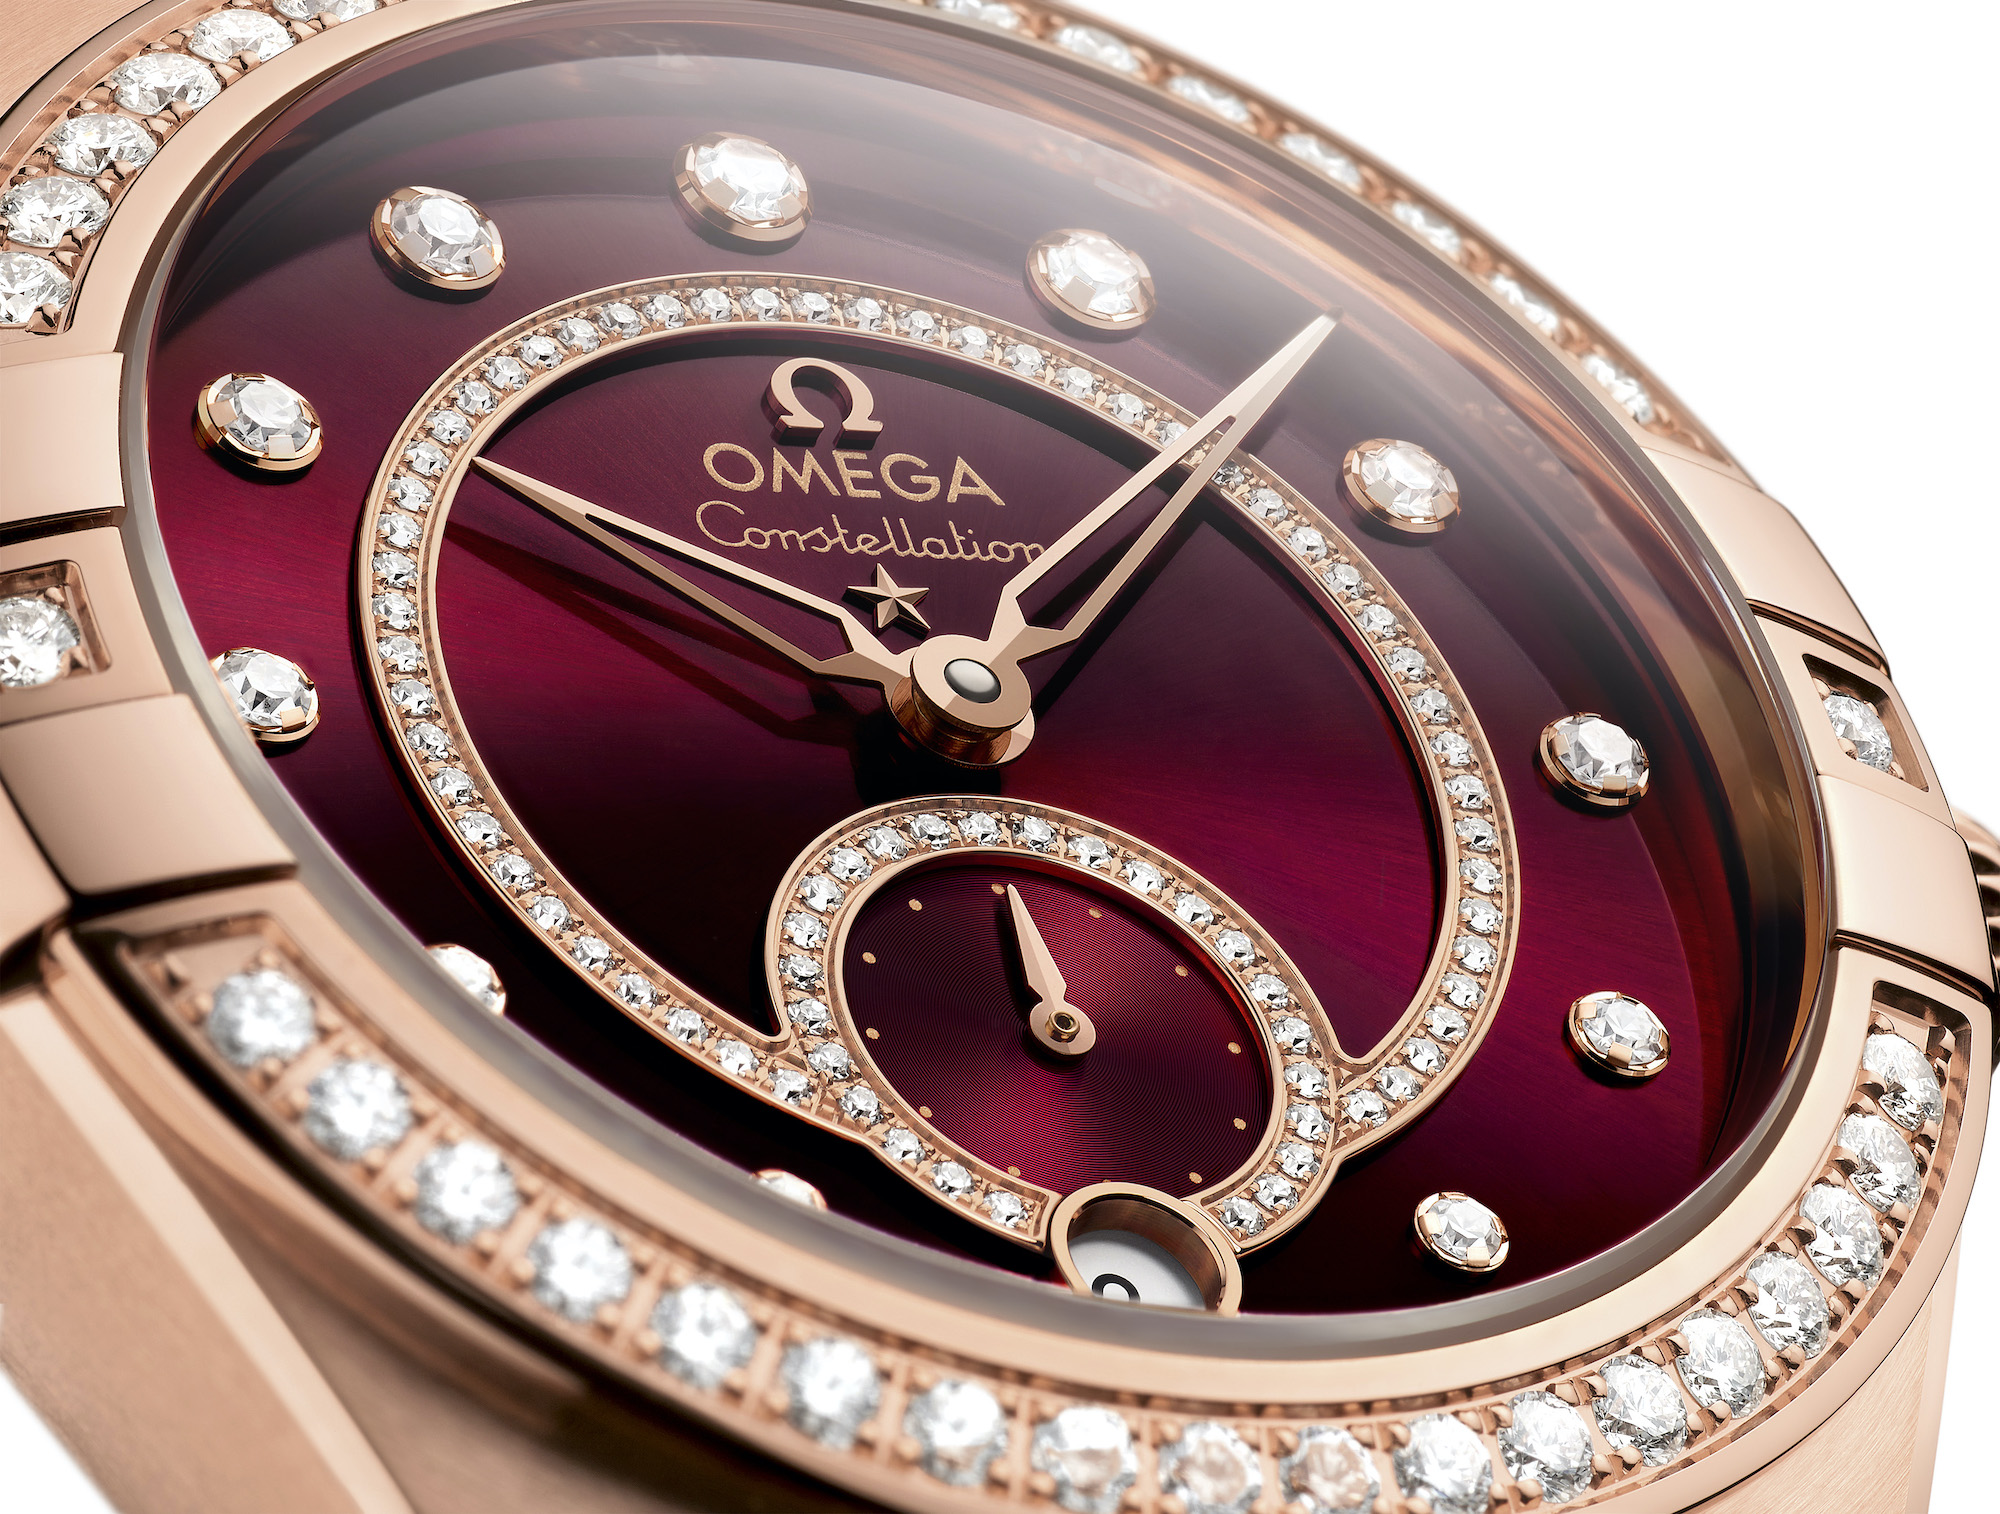 Omega Constellation Small Seconds 131.55.34.20.61.001 detalle esfera